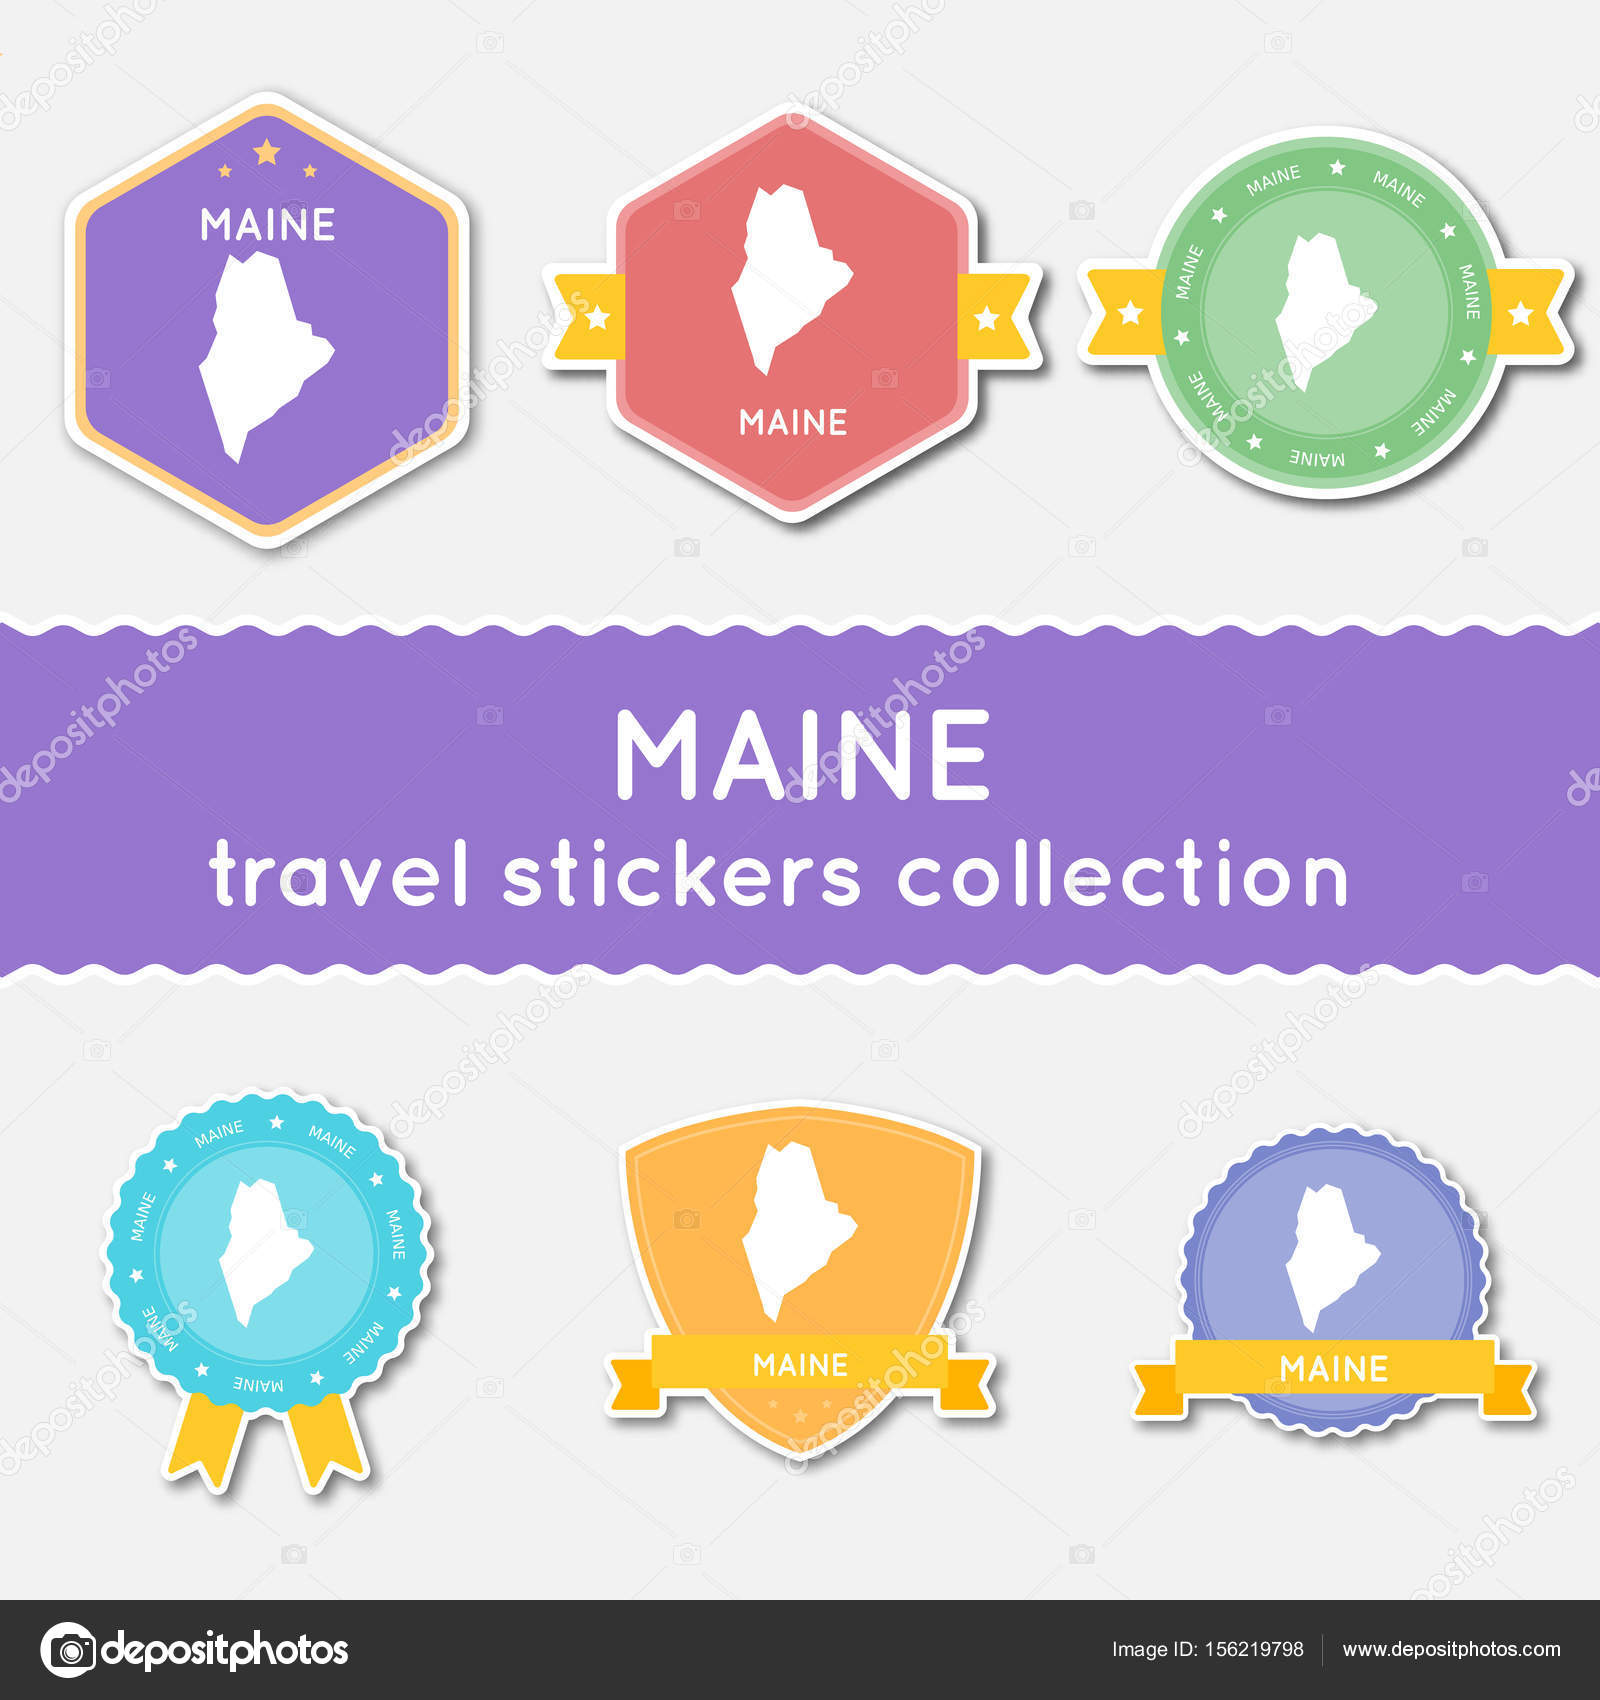 Maine Travel Stickers Collection Big Set Of Stickers With US State - Us map flat